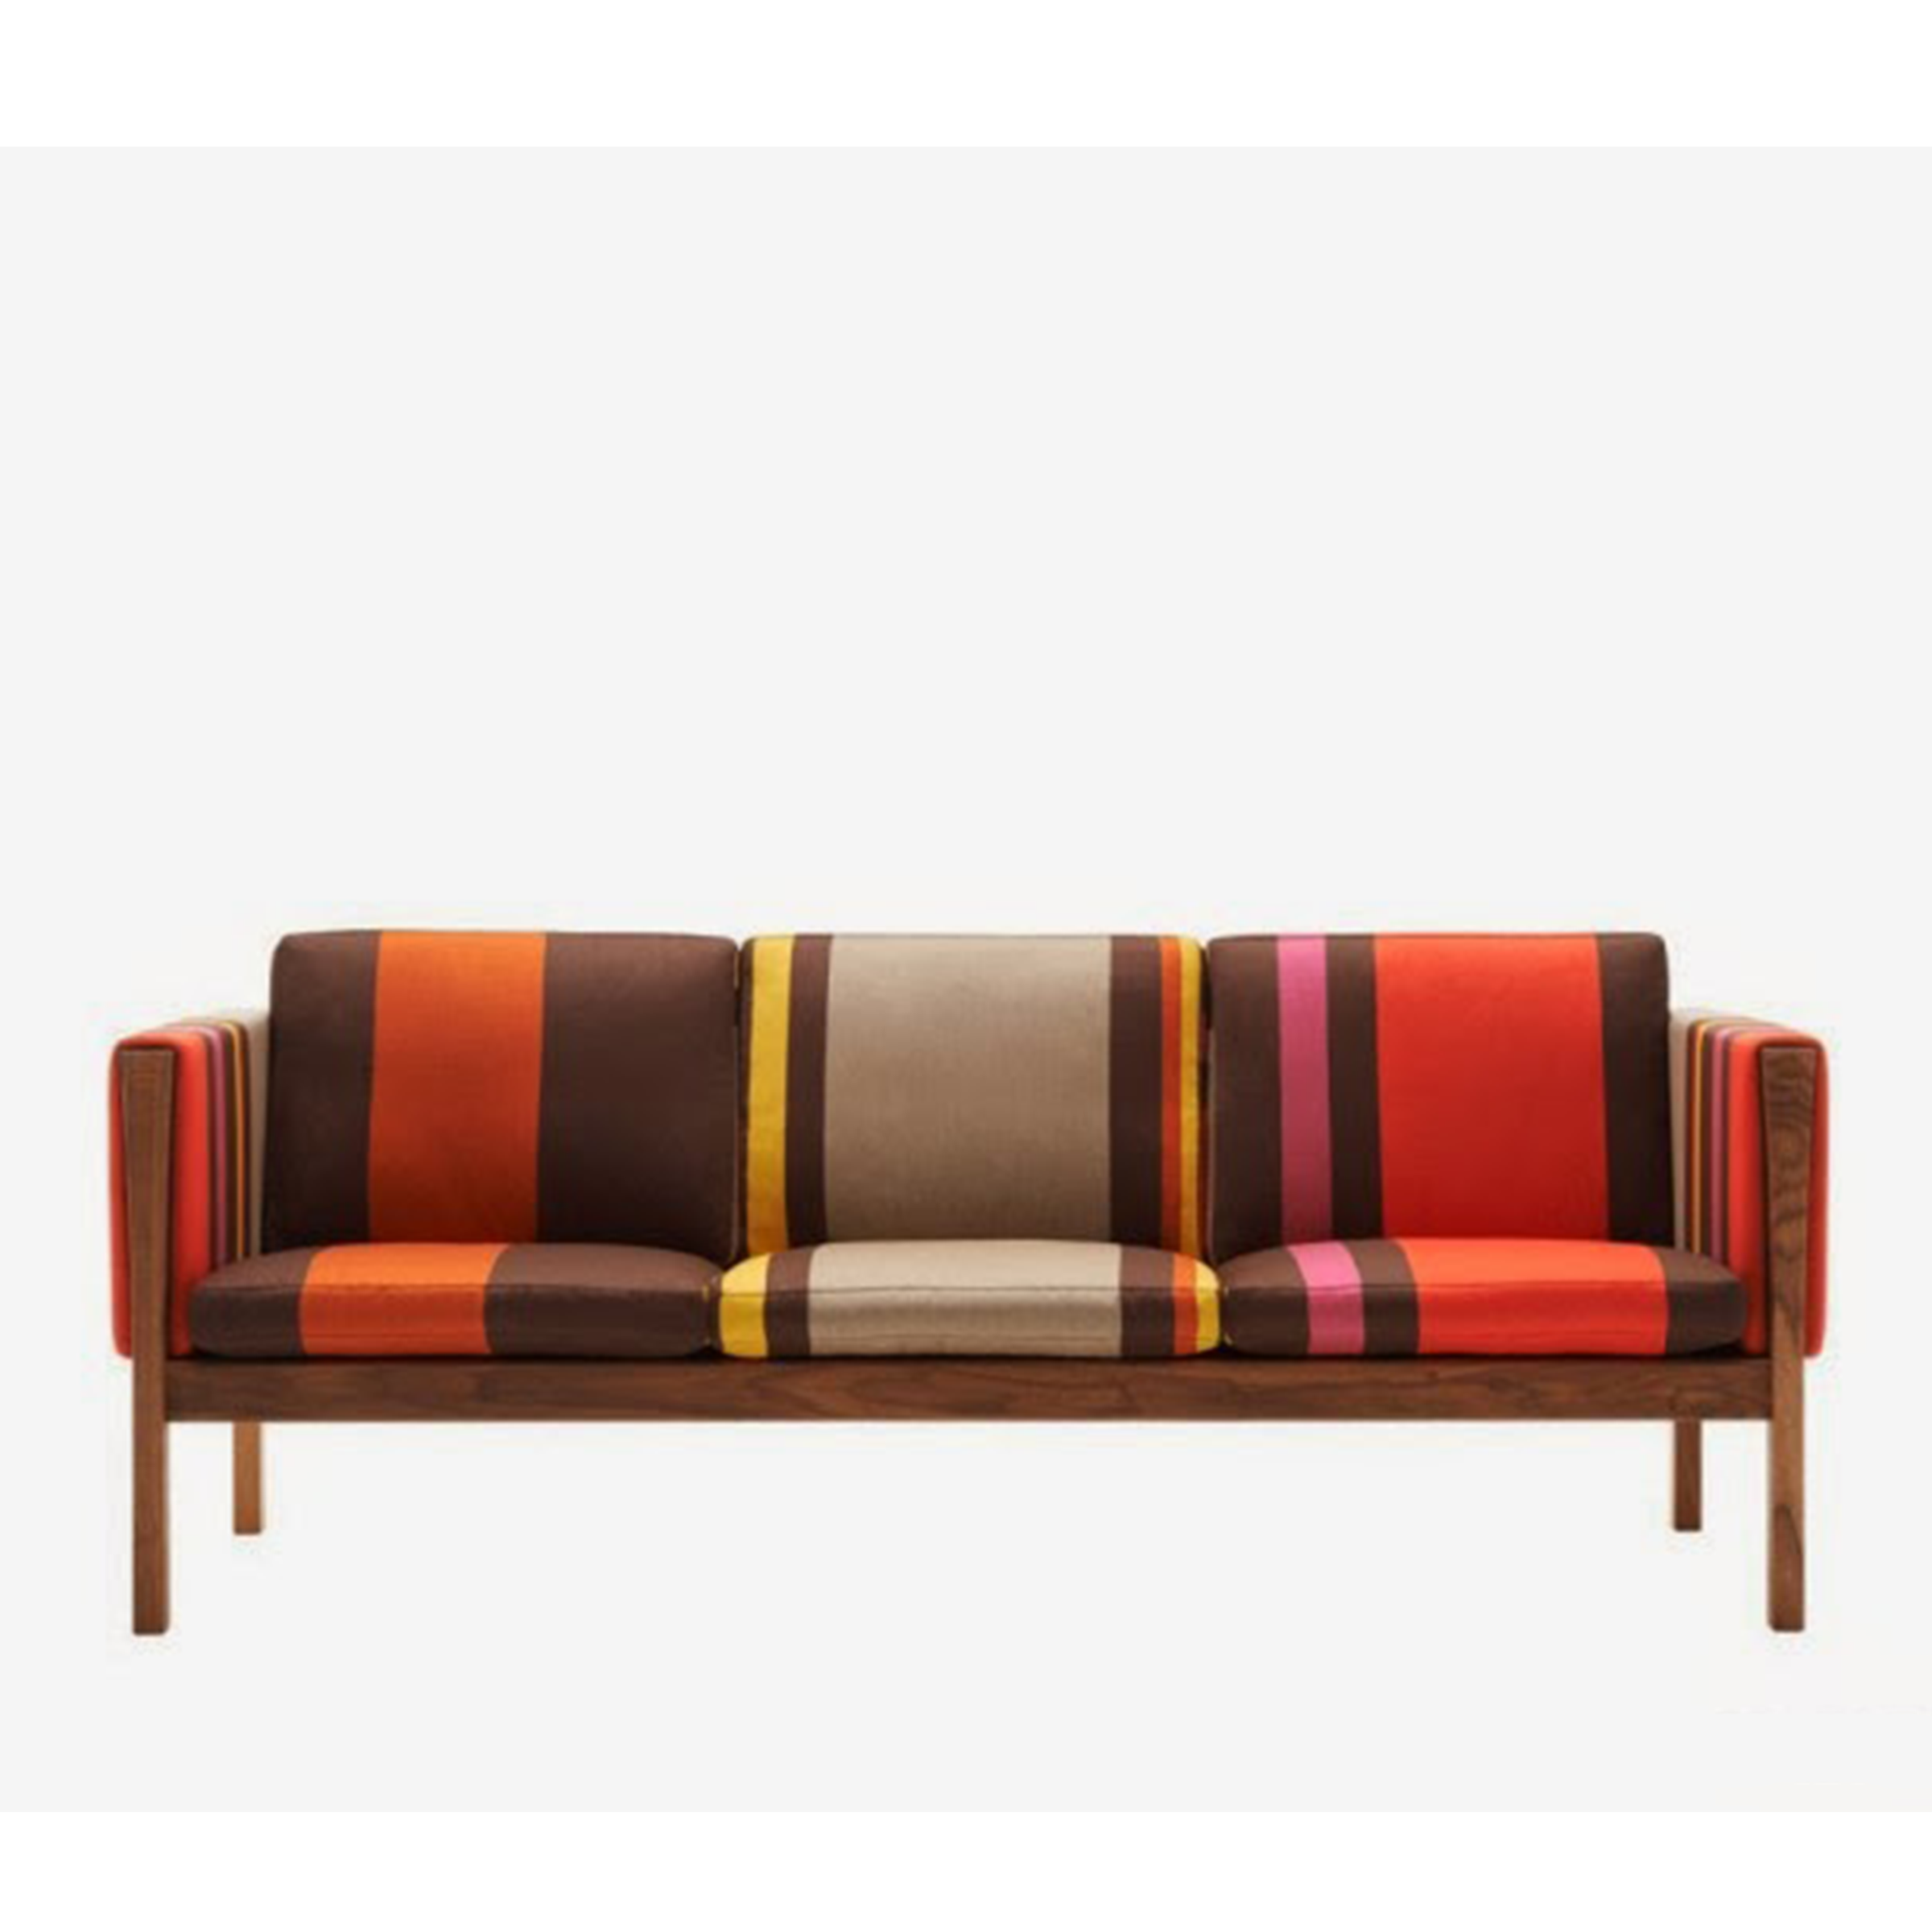 Designapplause Ch163 Sofa Hans J Wegner Paul Smith